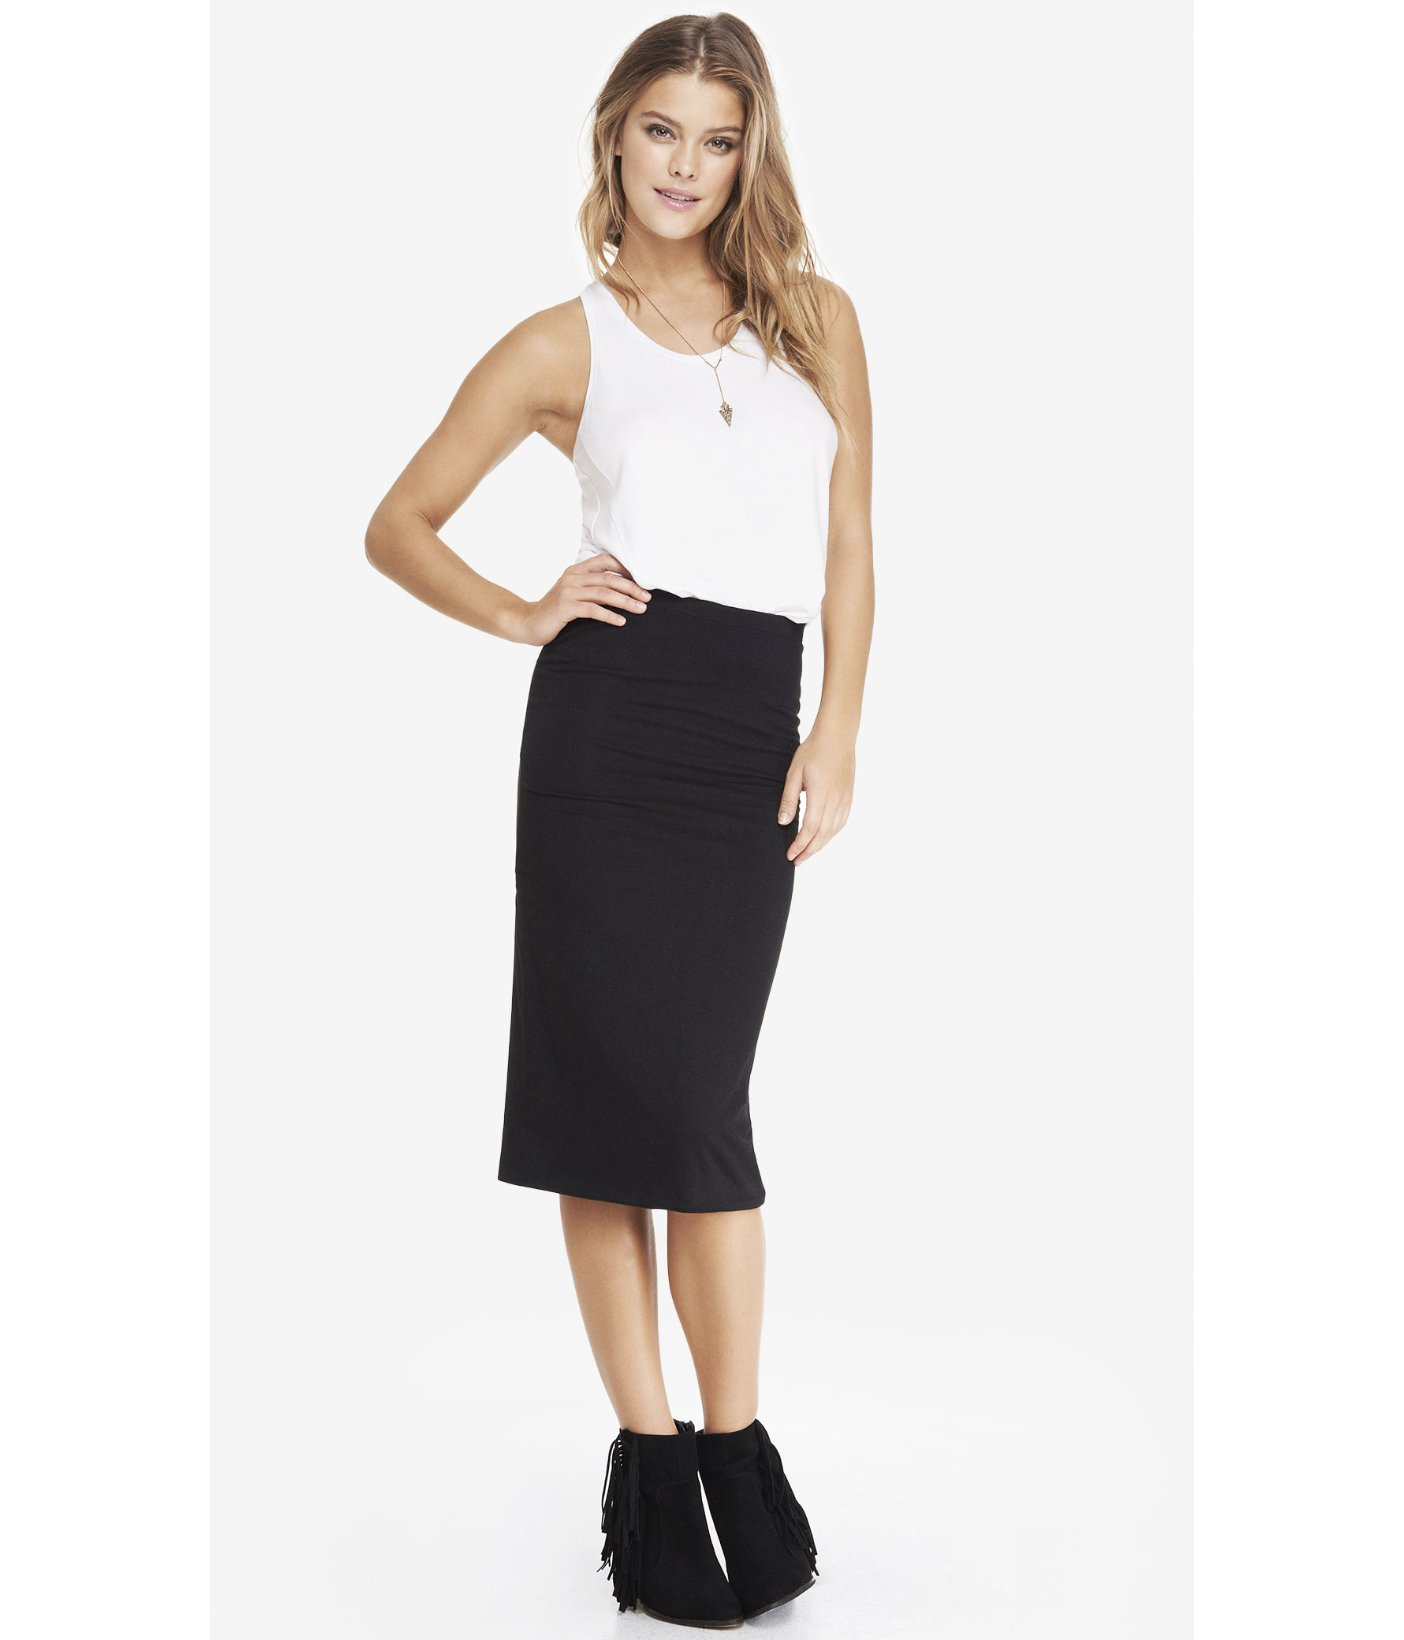 Express Stretch Knit Midi Pencil Skirt in Black | Lyst